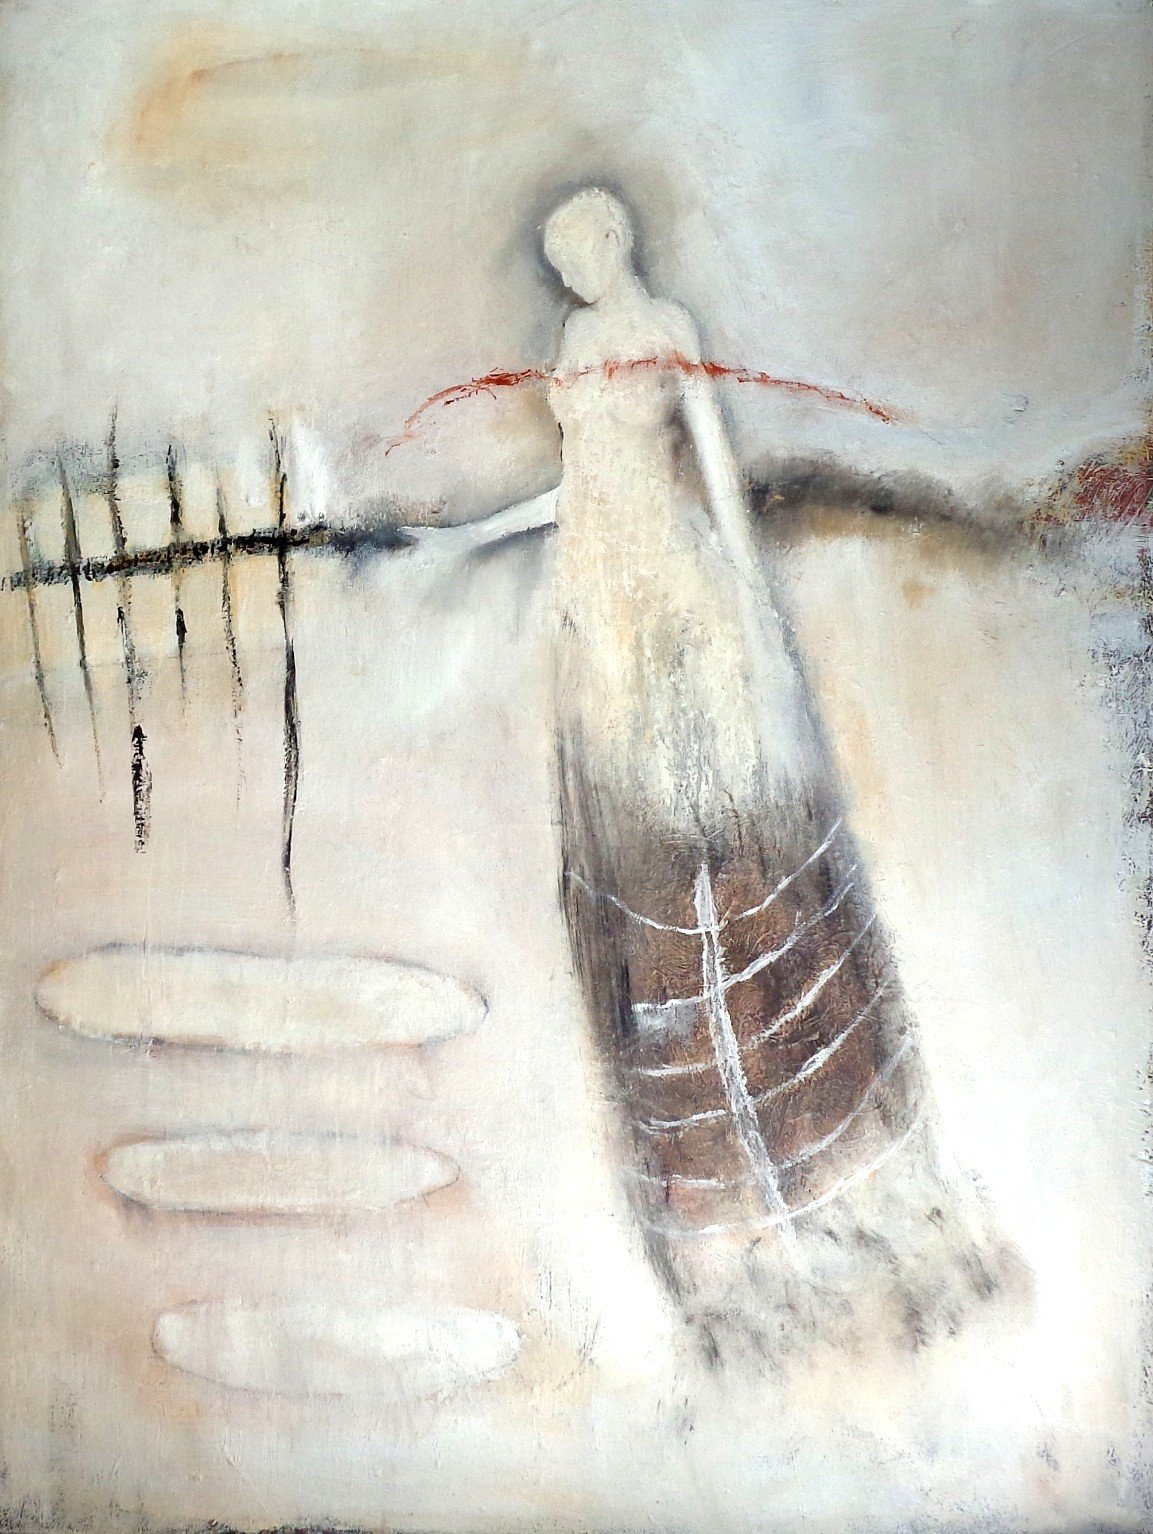 """""""From Nothing"""" by Jeanie Tomanek, Oil on canvas, 48x36 inches"""